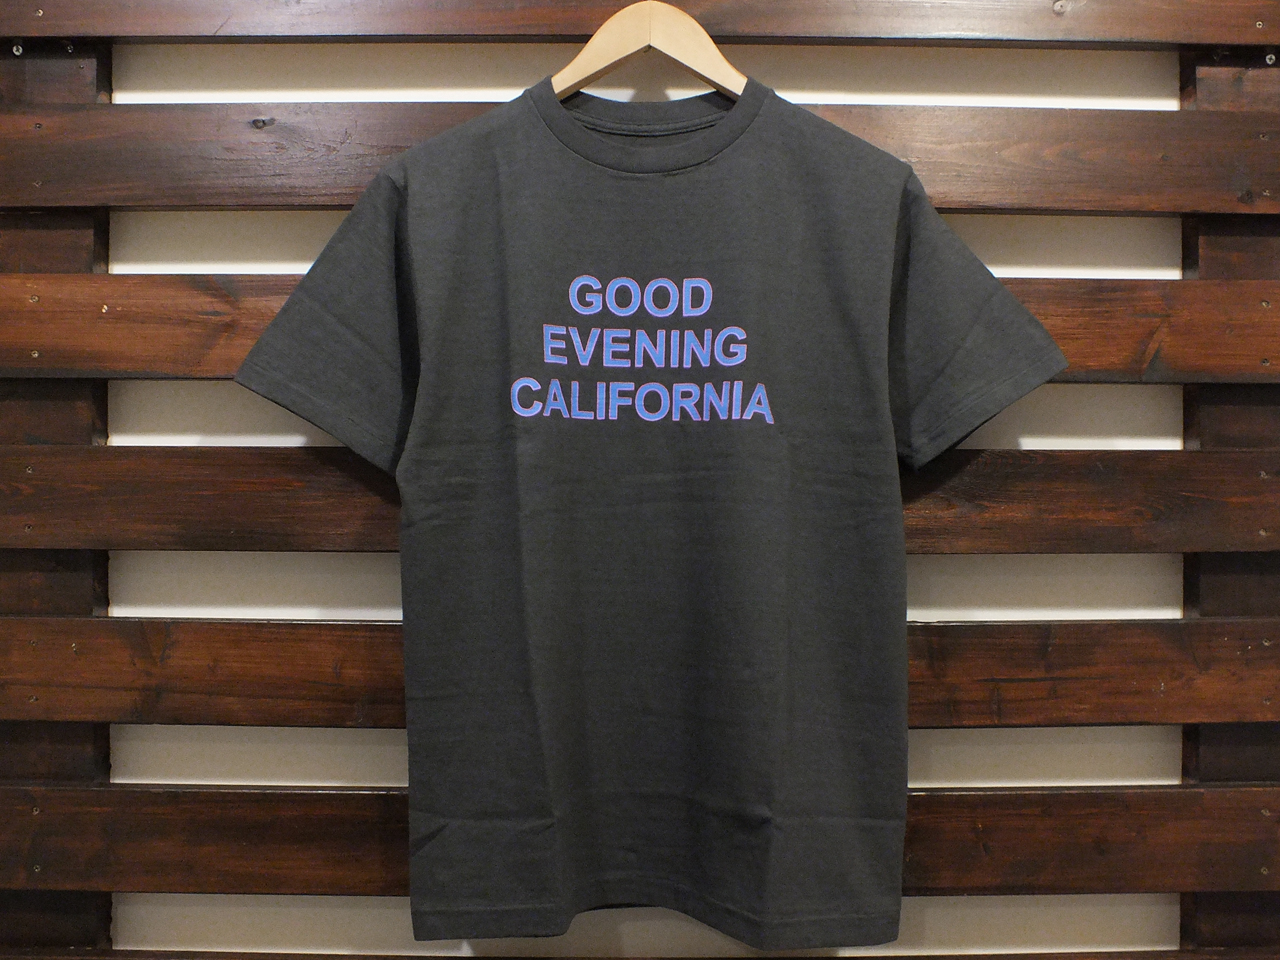 STANDARD CALIFORNIA GOOD EVENING CALIFORNIA T-SHIRT BLACK 「メール便OK」